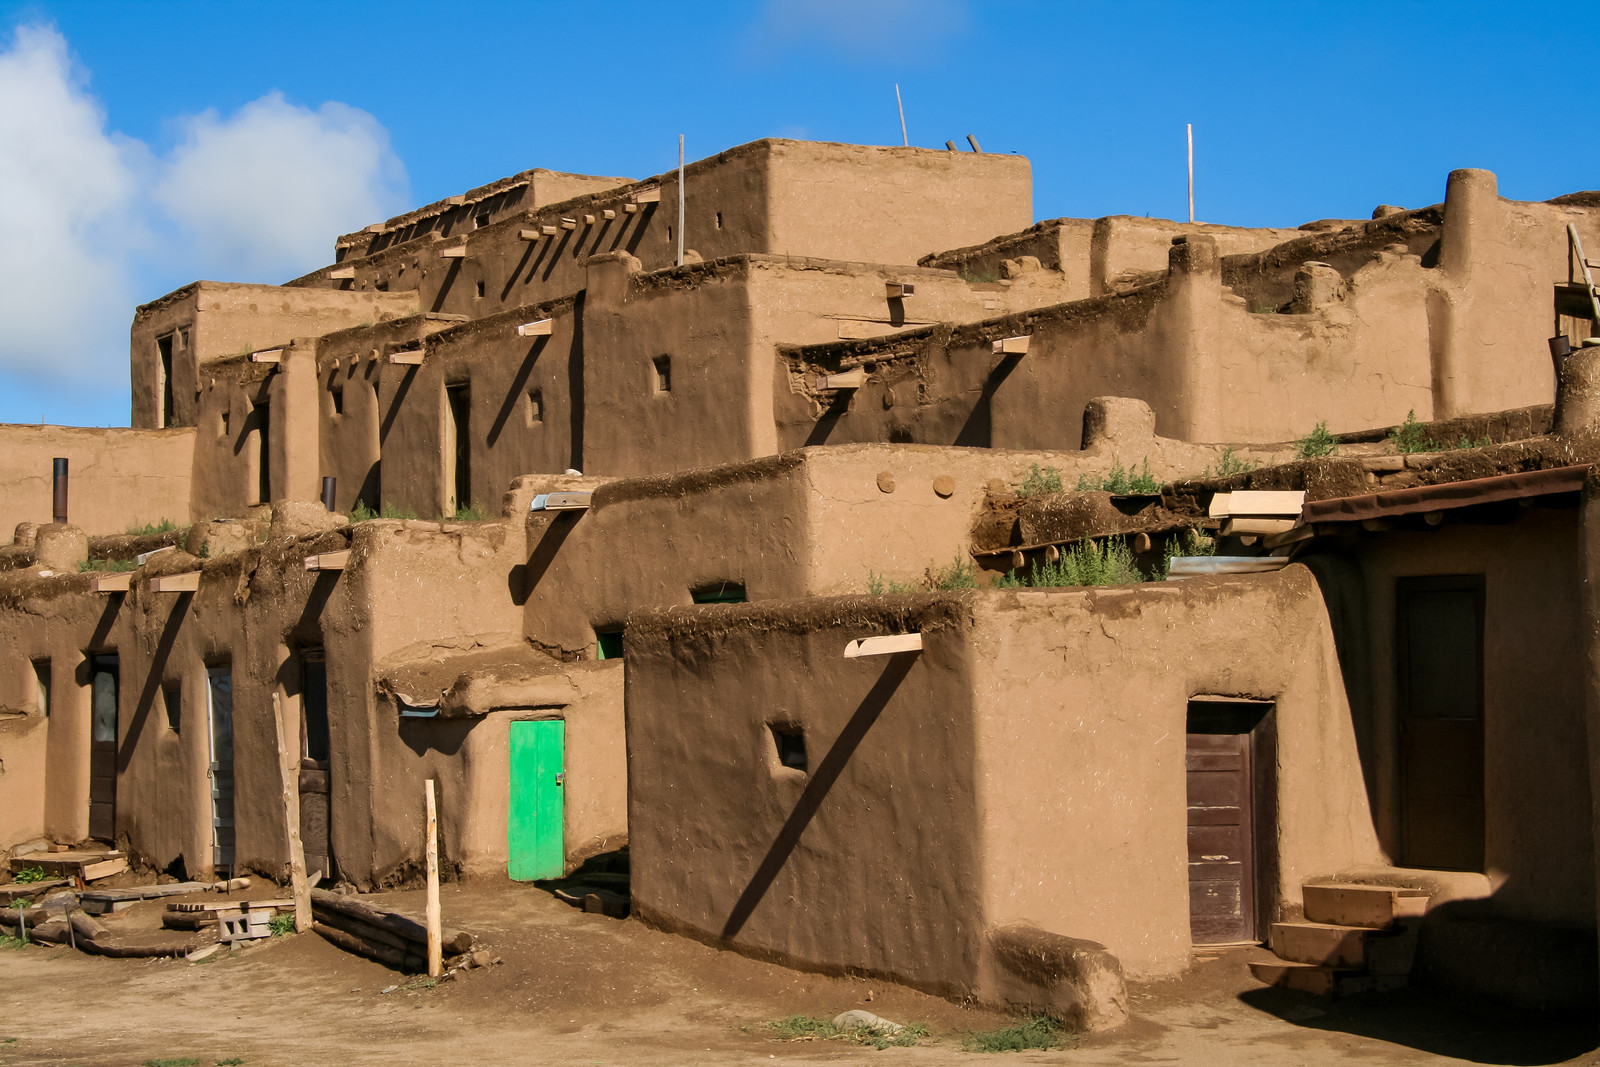 Pueblo housing in Taos, with a green door on one of the houses and blue sky in the background